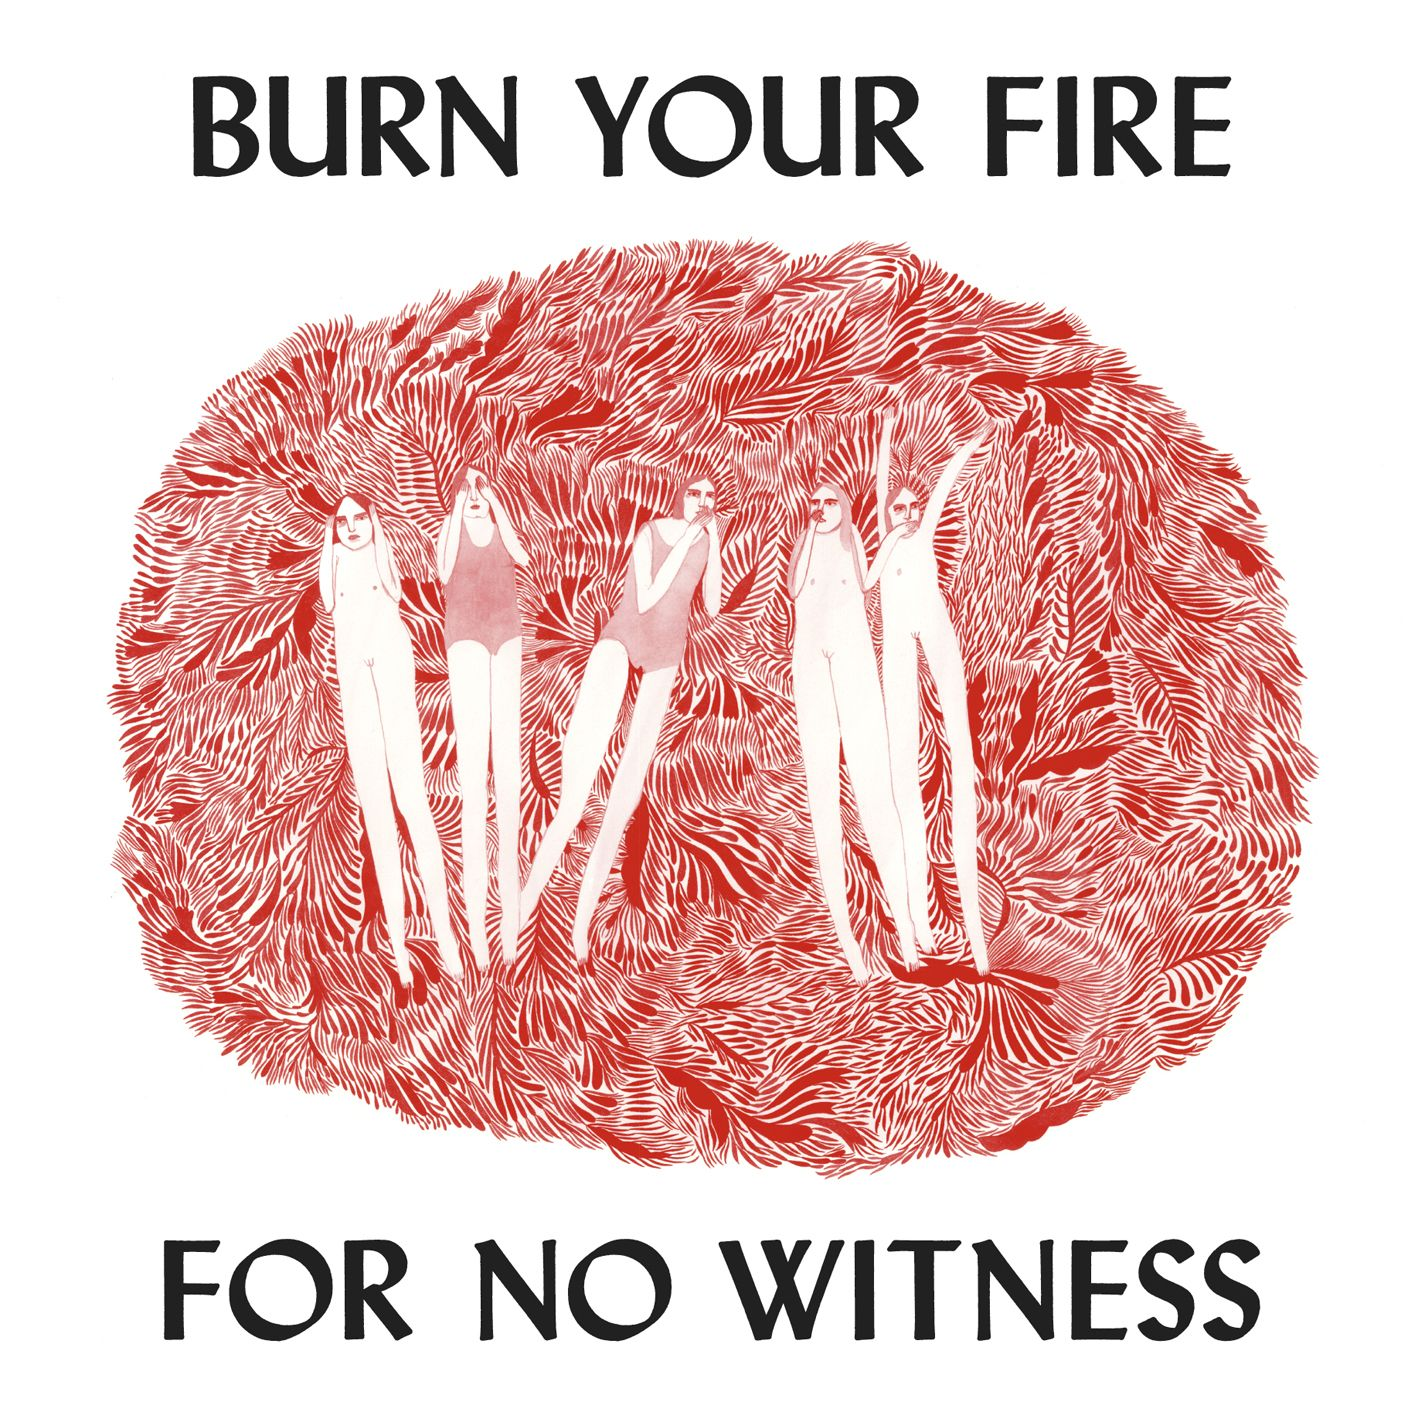 Burn-Your-Fire-For-No-Witness-cover